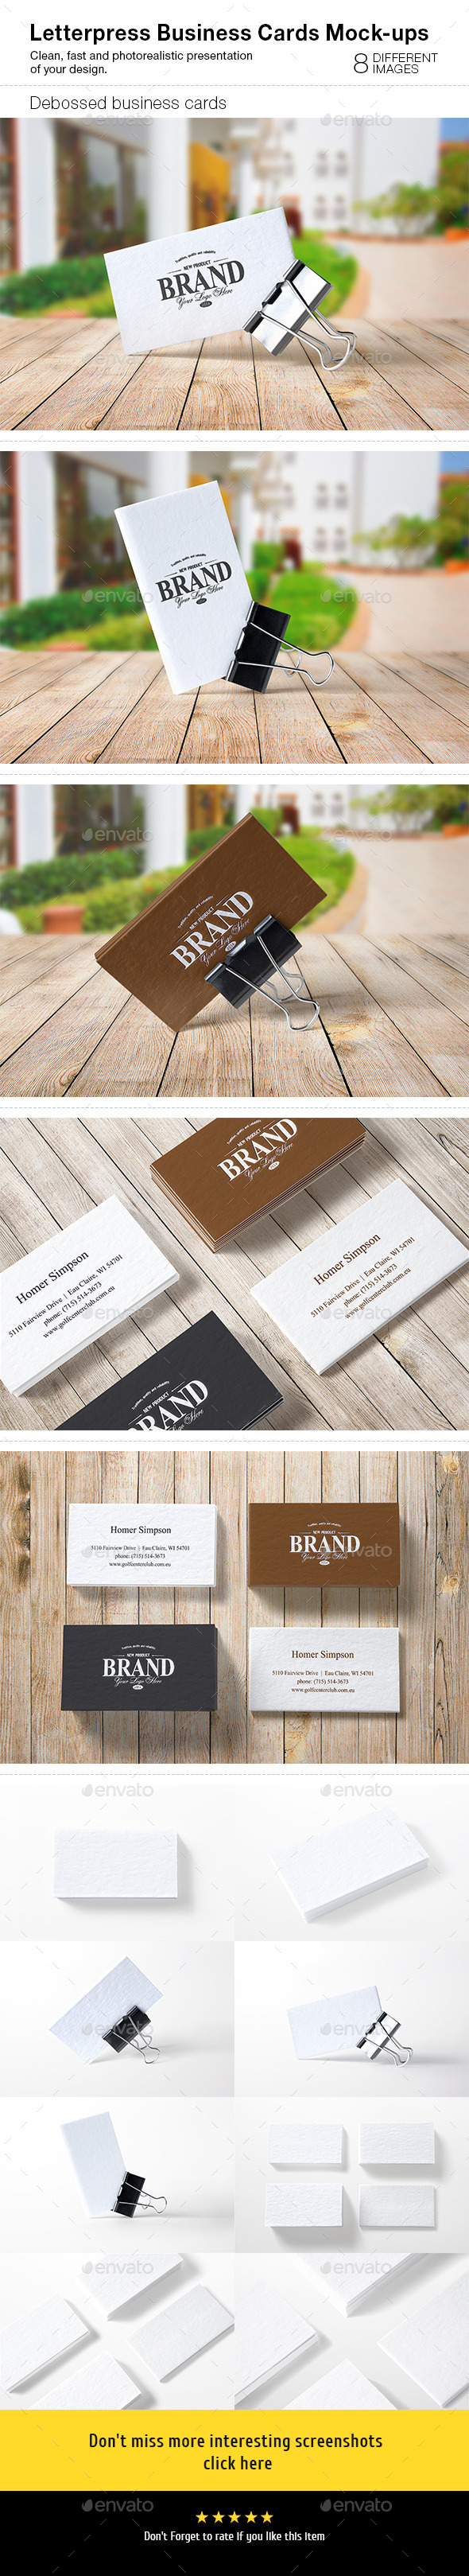 Letterpress Business Cards Mock-Ups - Business Cards Print